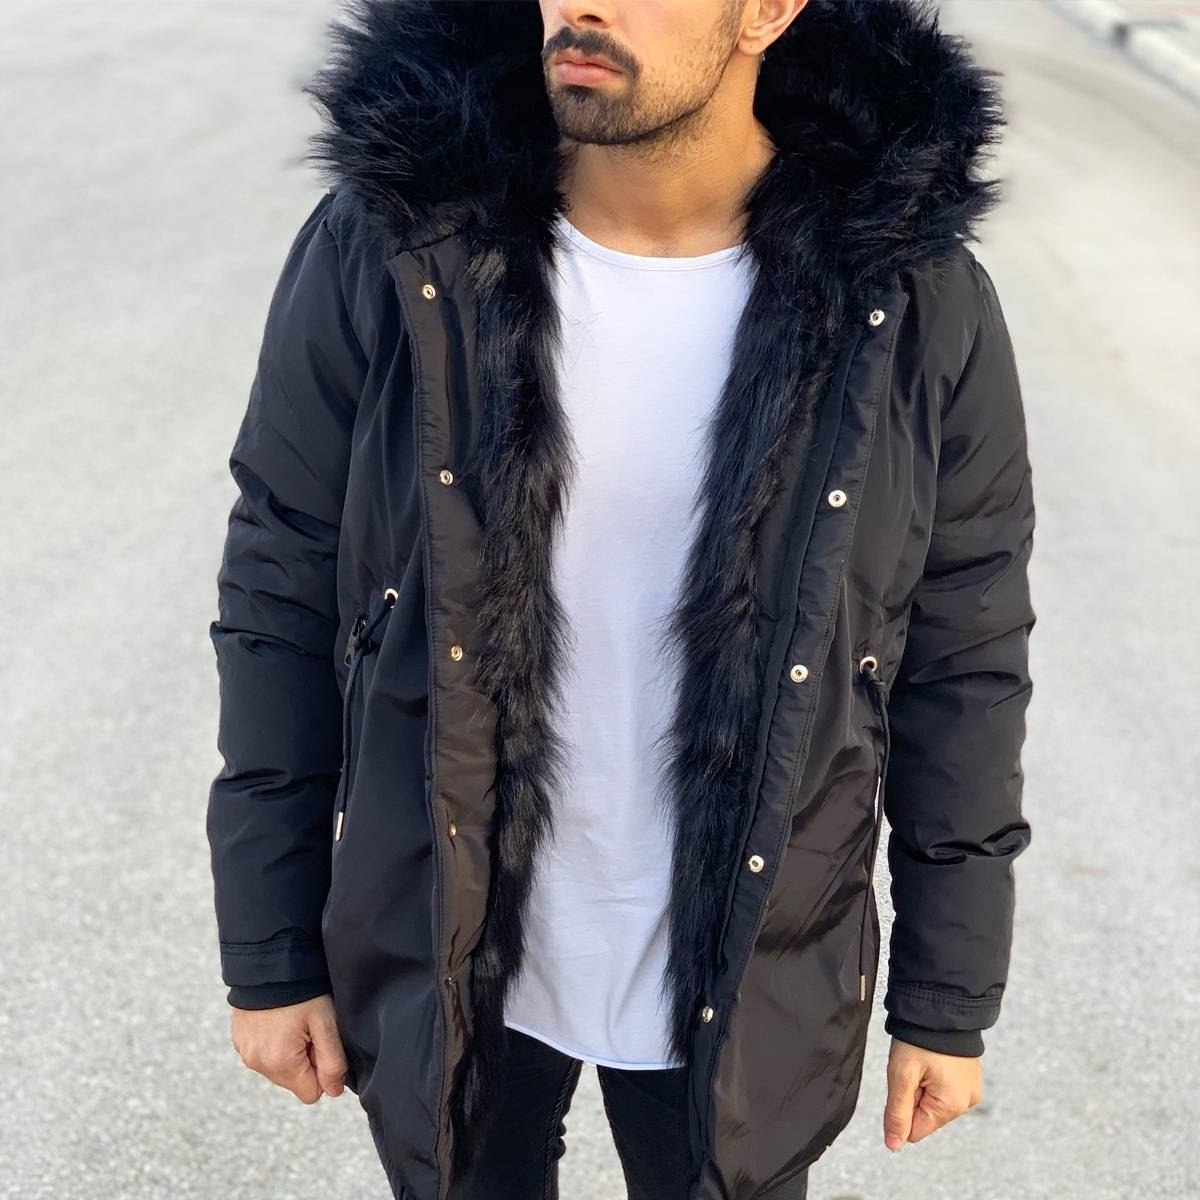 Winter Furry Puffy Coat Black